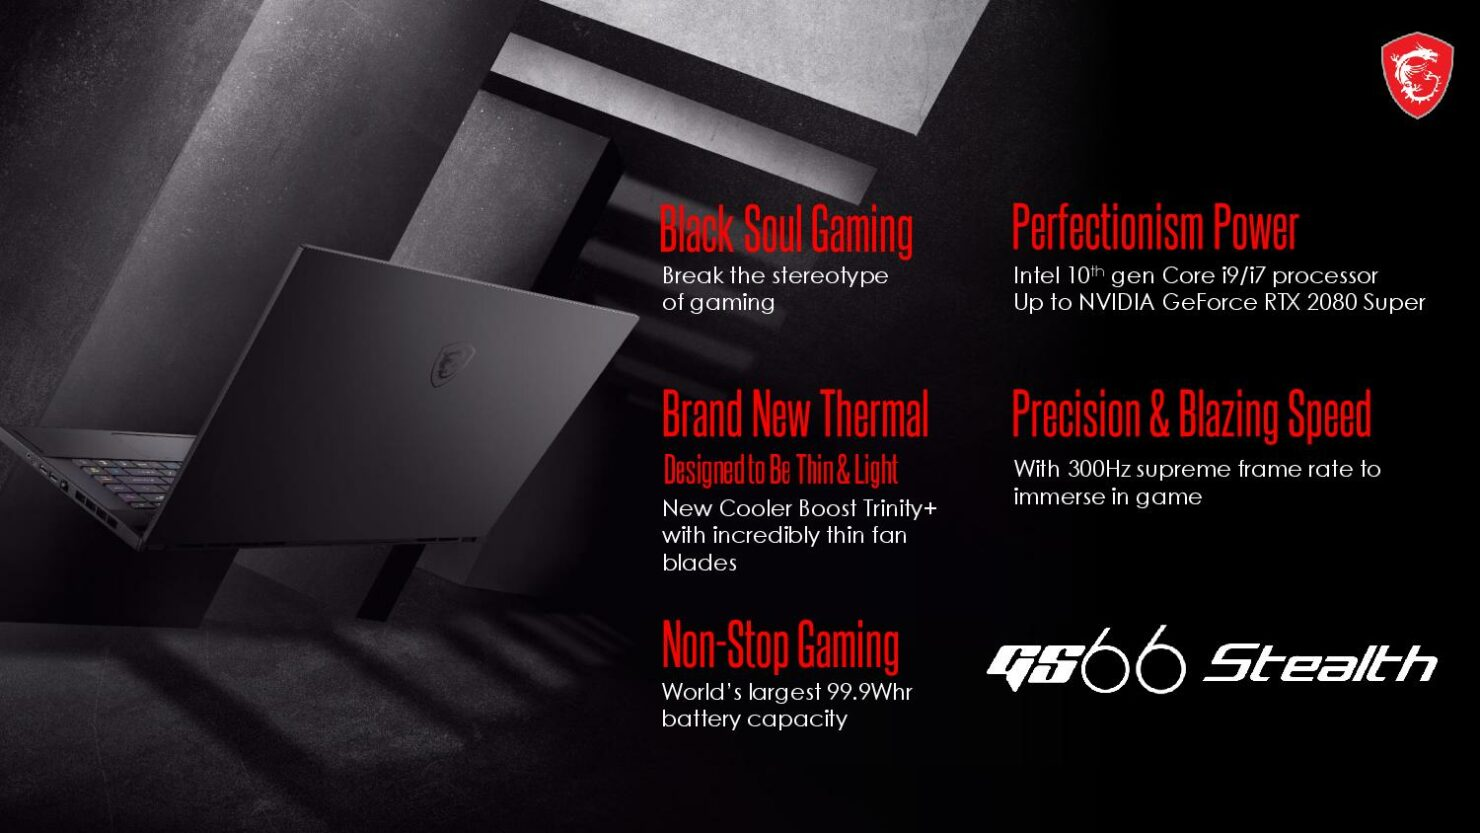 msi-gs66-stealth-product-information-page-003-2